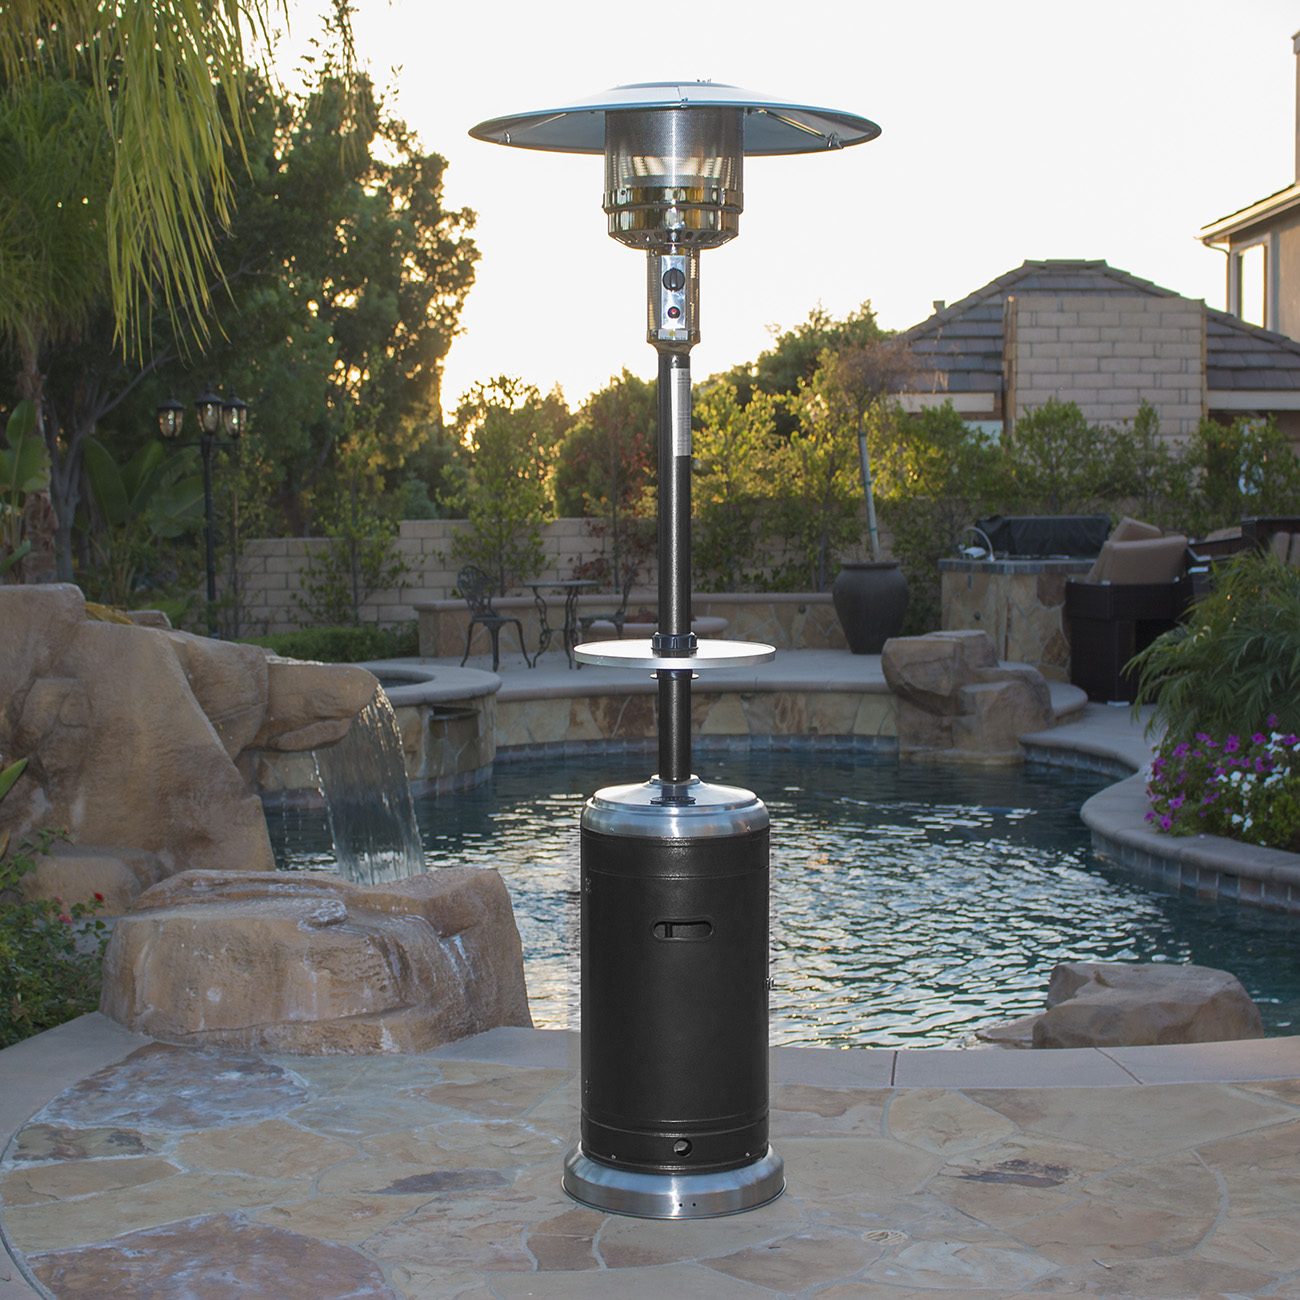 Superieur Garden Outdoor Patio Heater W Table Propane Standing